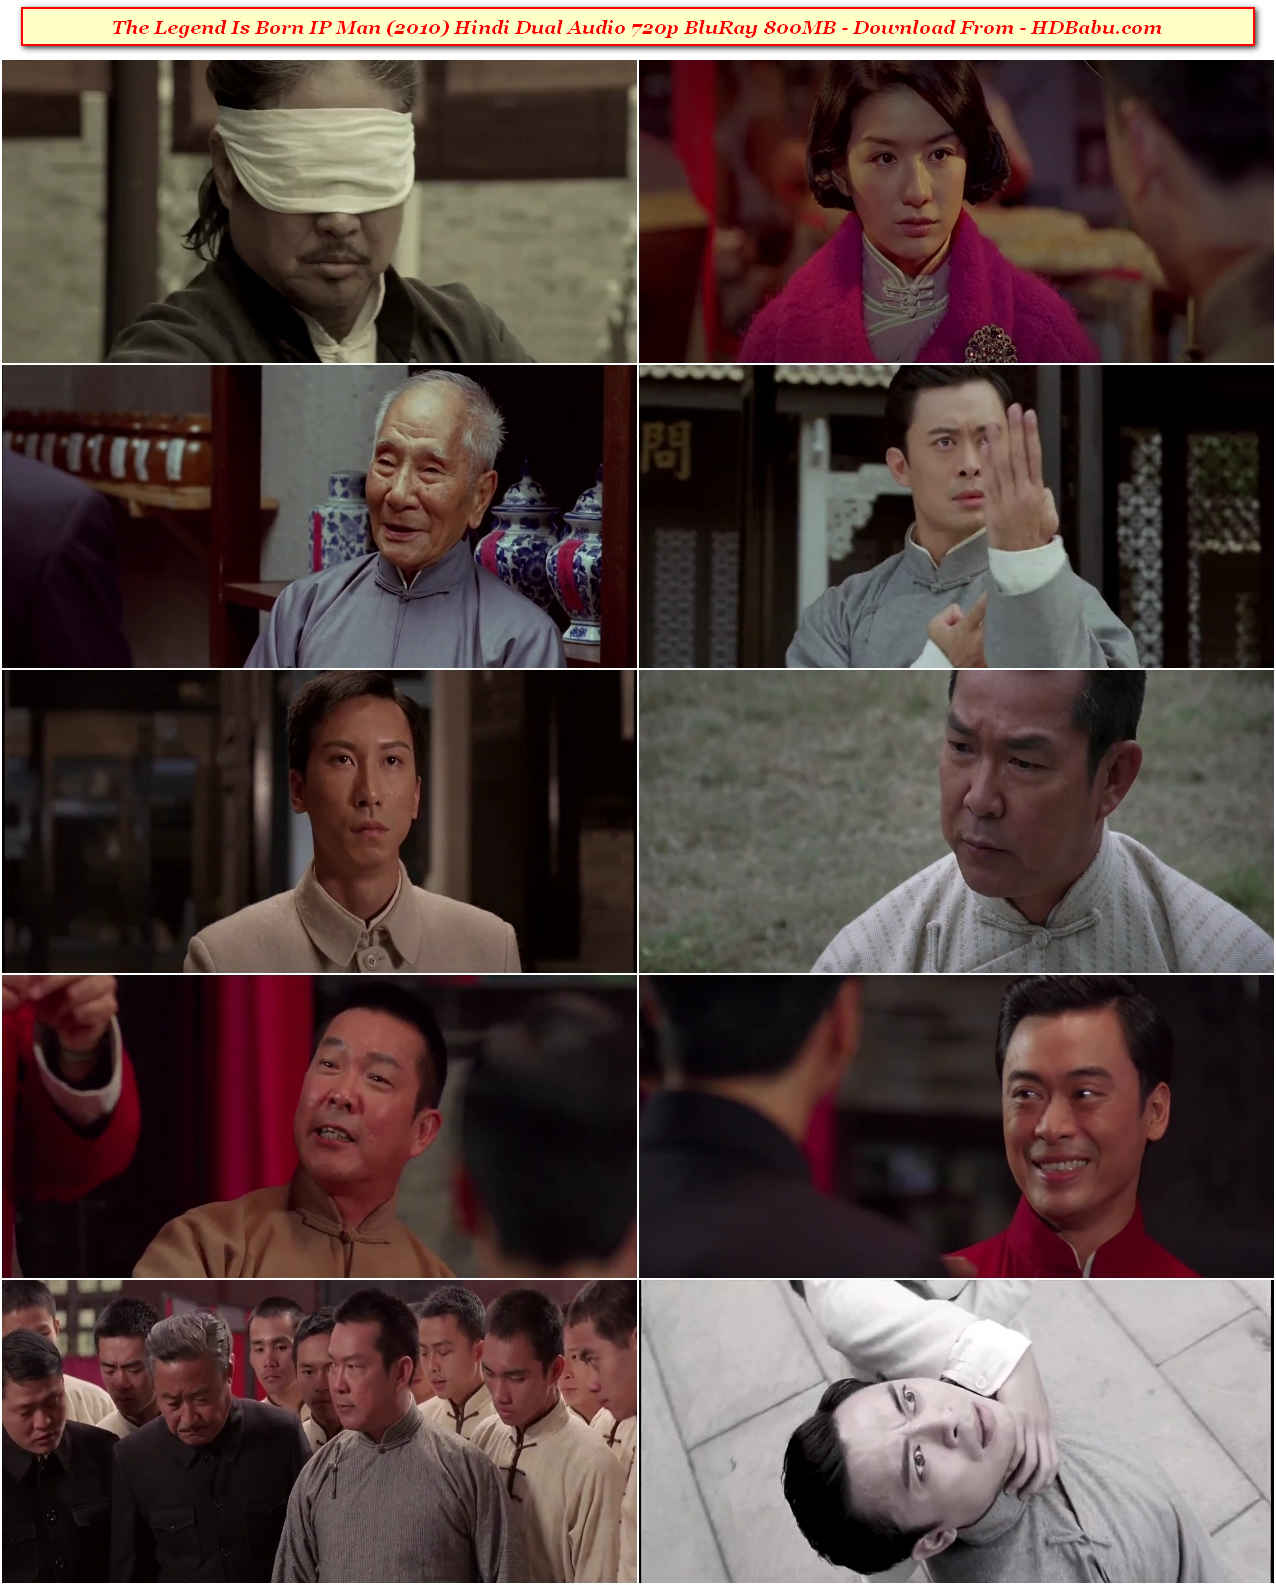 The Legend Is Born IP Man Hindi Dual Audio Full Movie Download